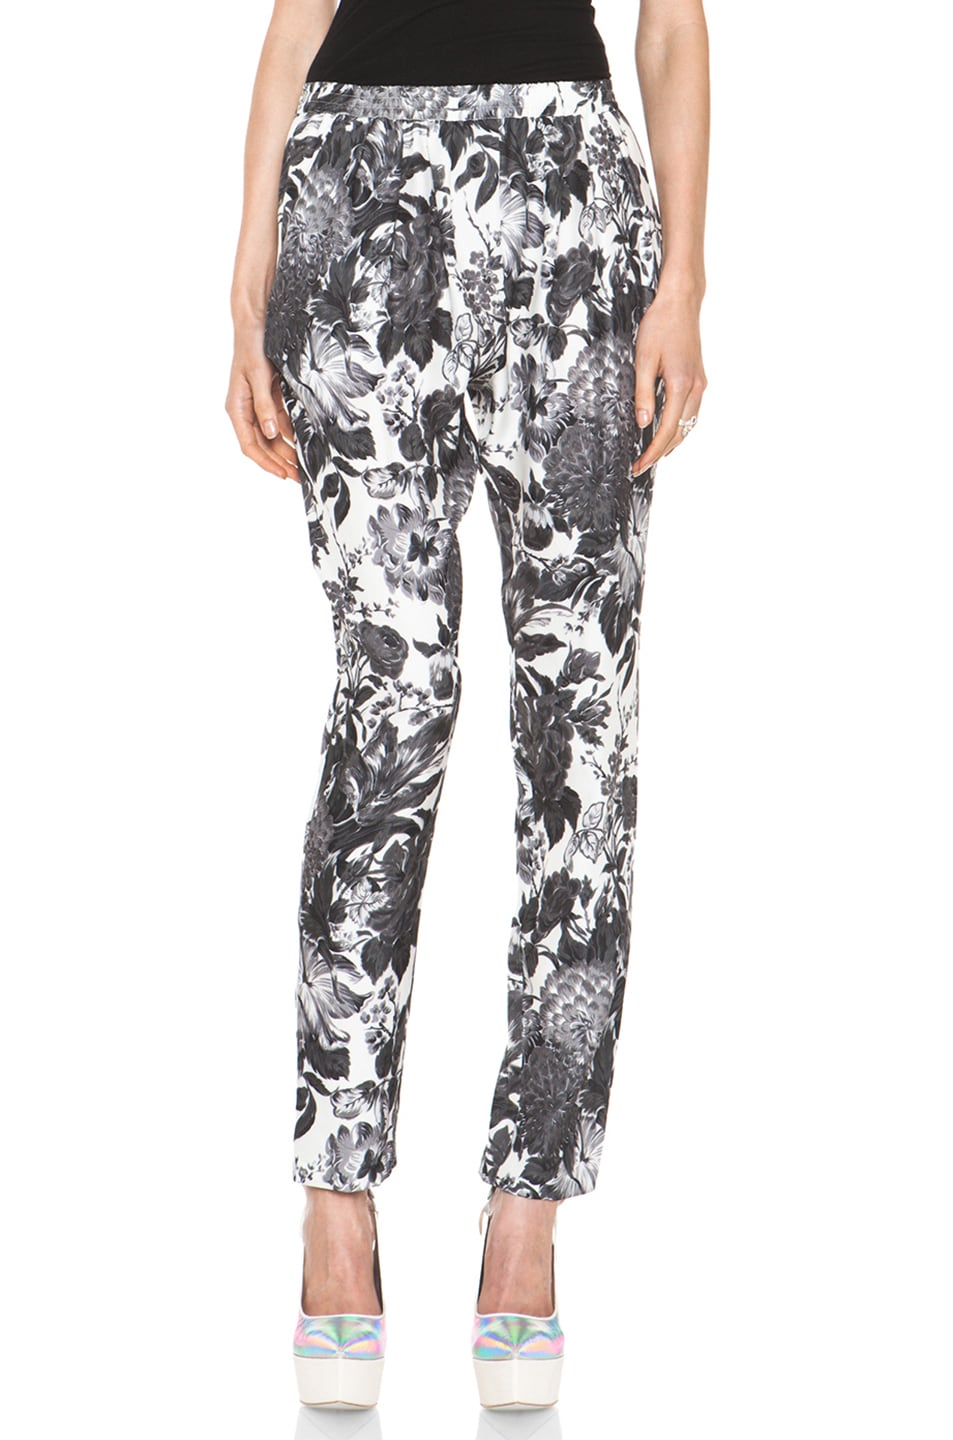 Image 1 of Stella McCartney Toile De Jouy Print Pant in Black Multi